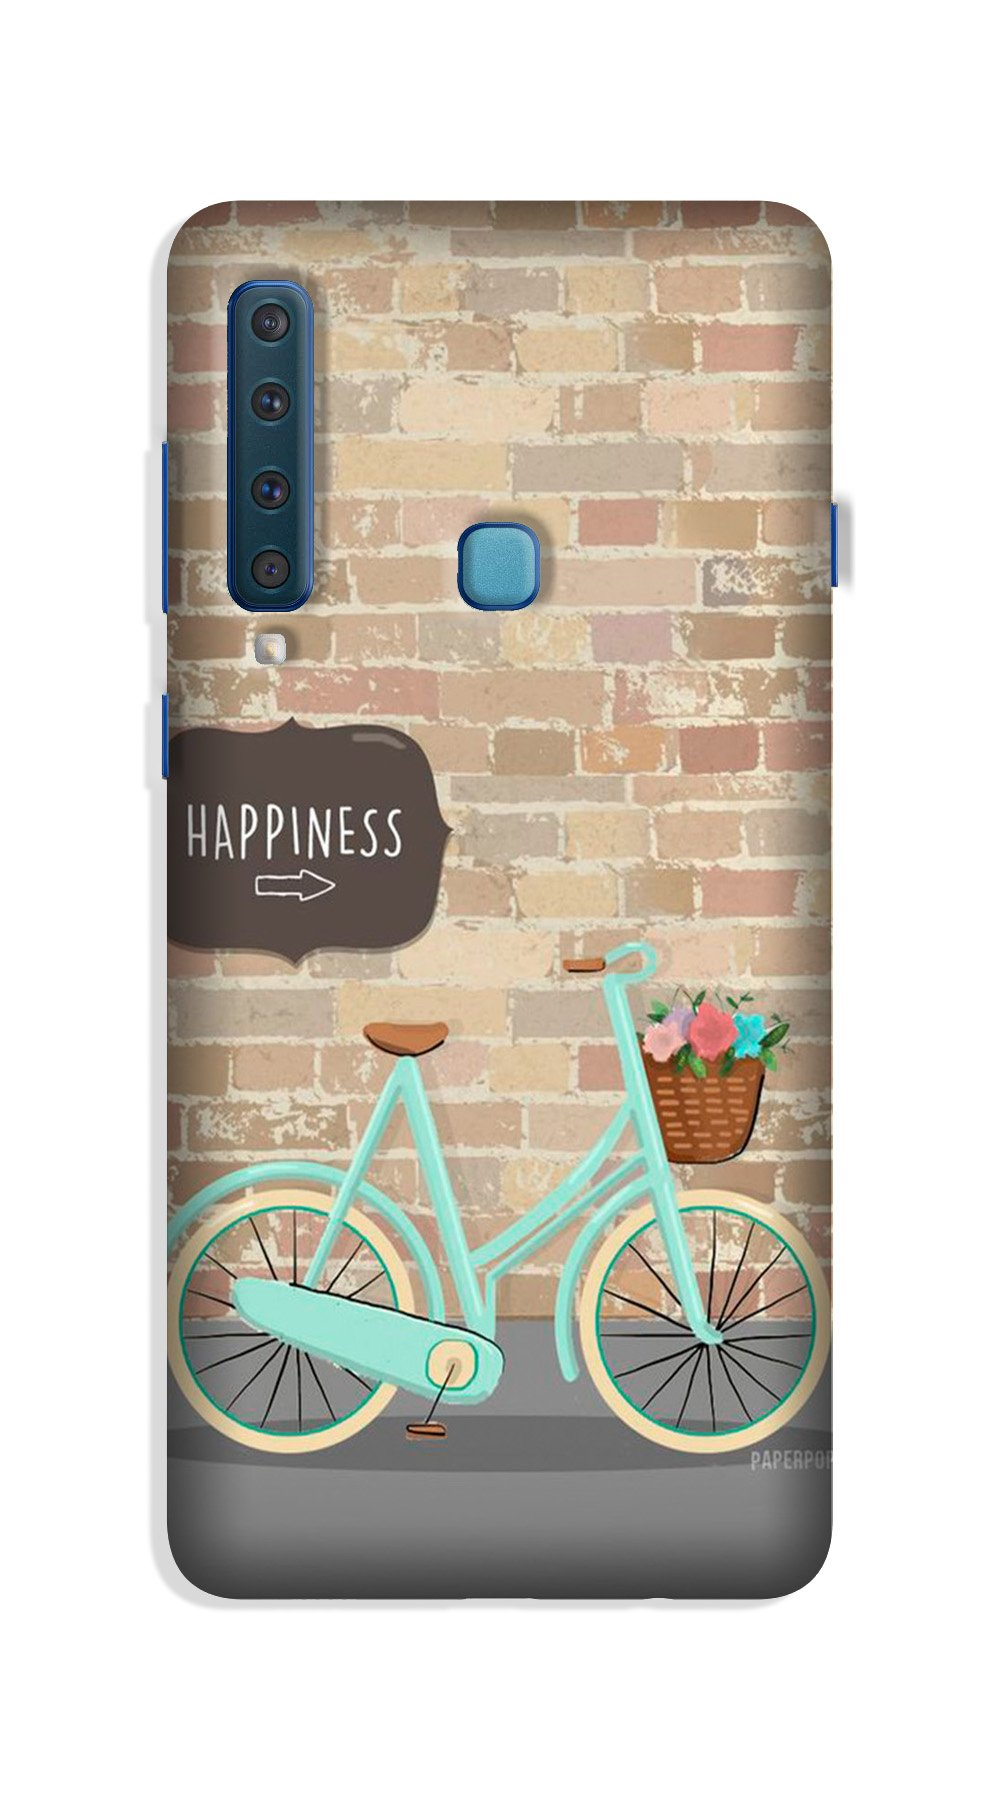 Happiness Case for Galaxy A9 (2018)